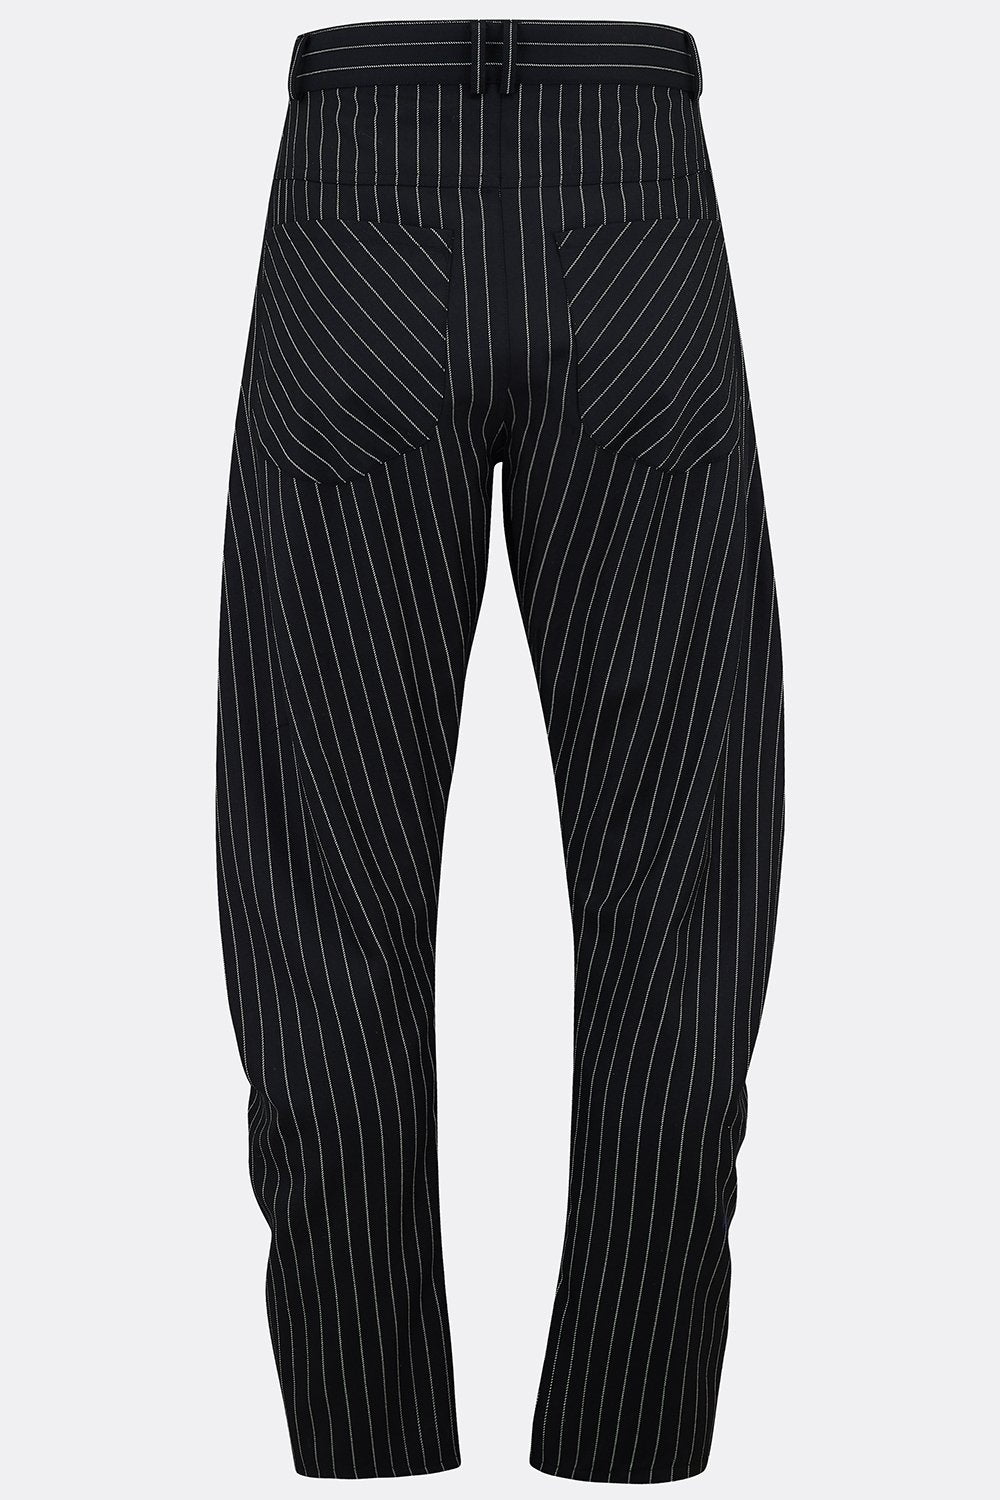 APACHE TROUSERS IN BLACK ROPE STRIPE-menswear-A Child Of The Jago